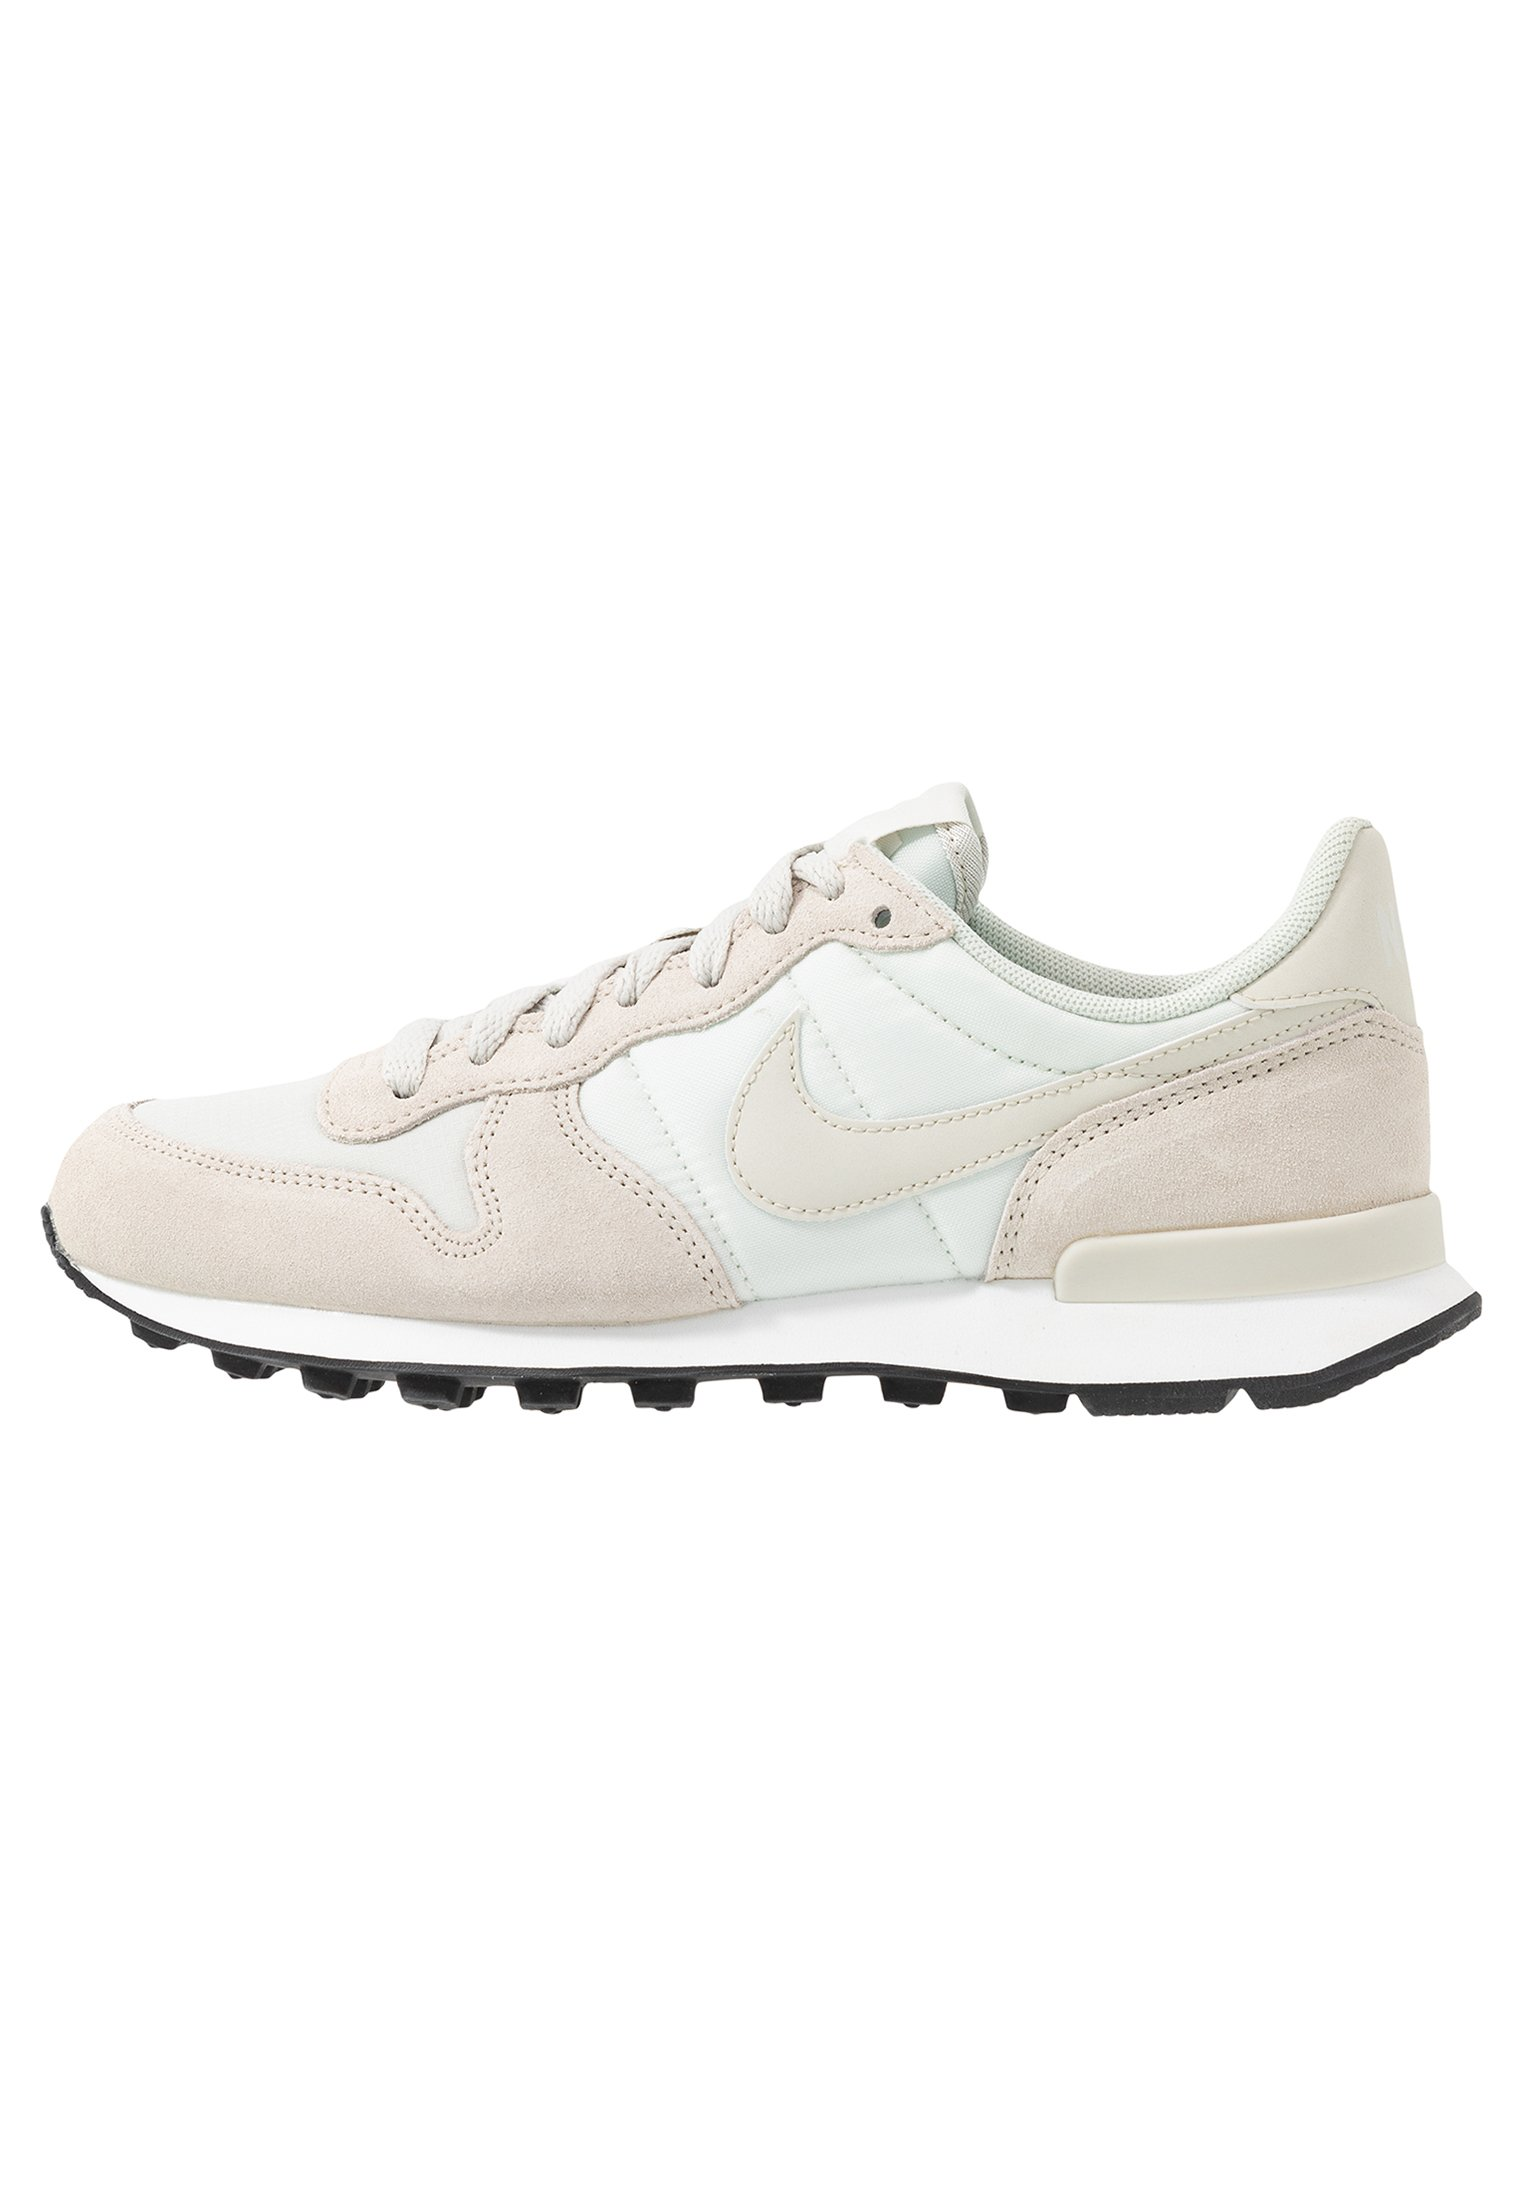 INTERNATIONALIST Sneakers laag phantomlight bonesummit whiteblack